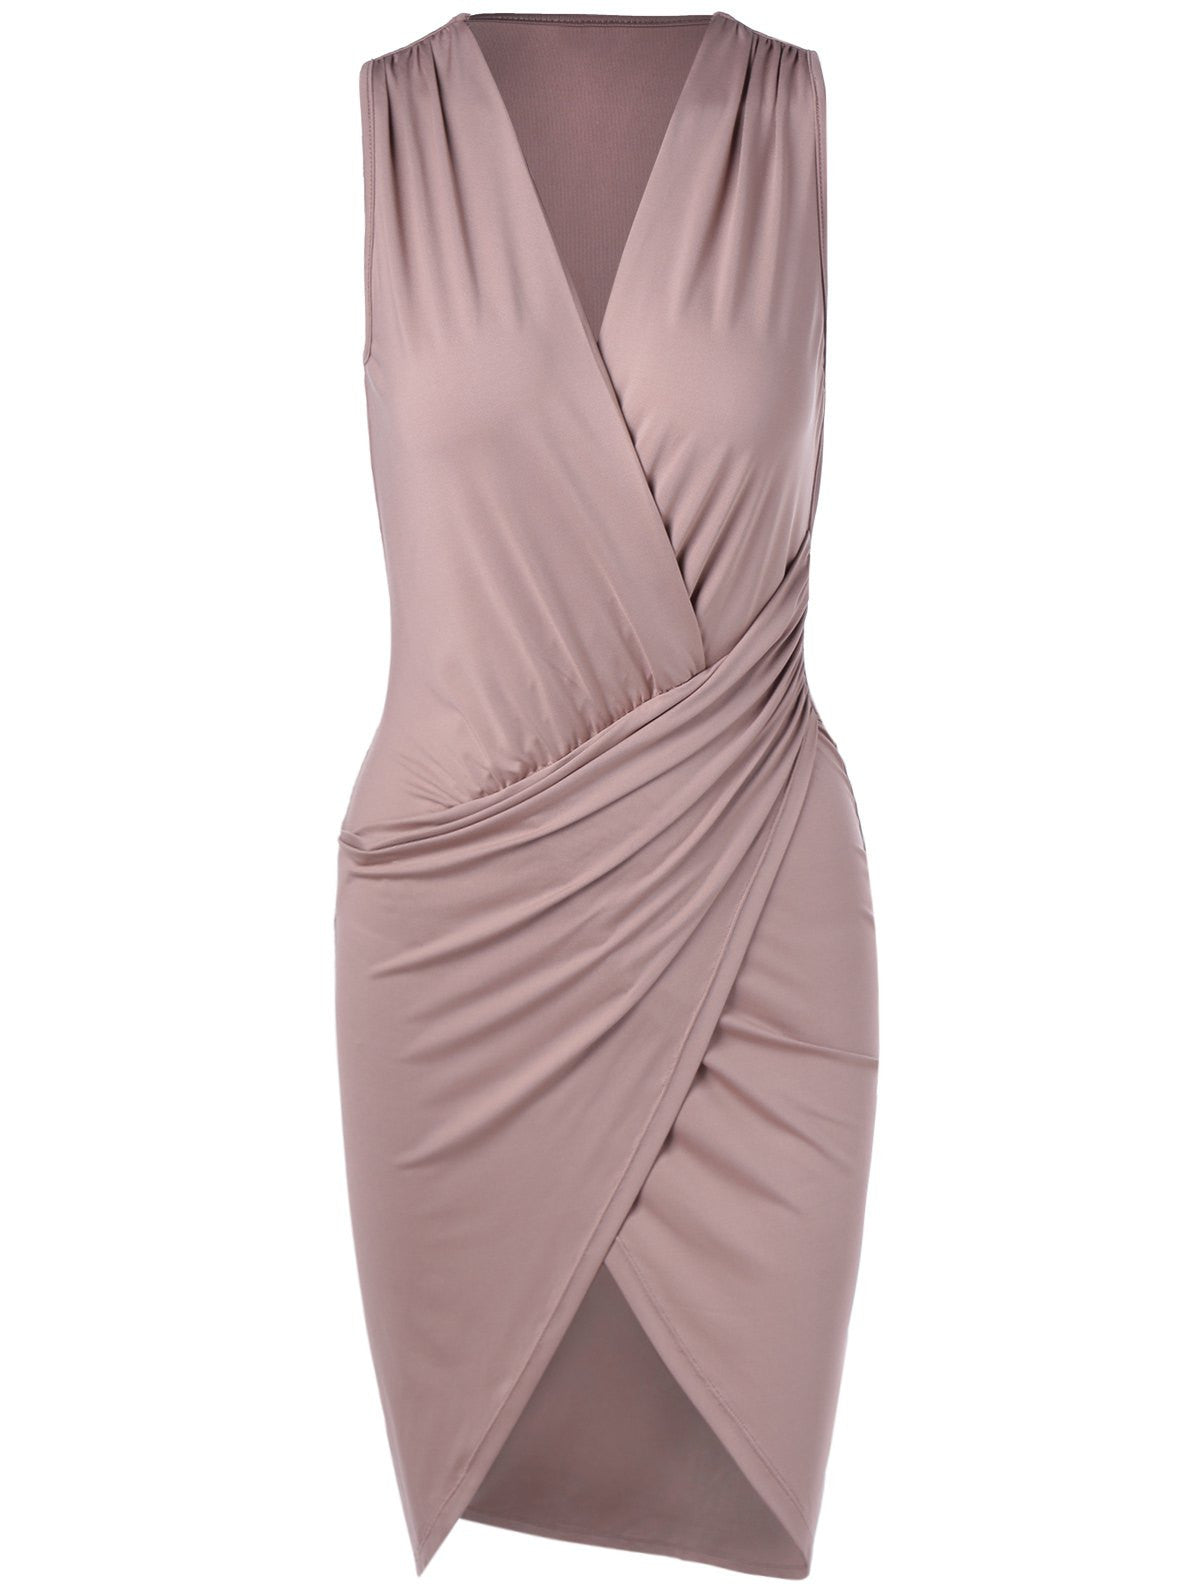 Elegant V-Neck Sleeveless Pleating Fitted Party Dress LAVELIQ